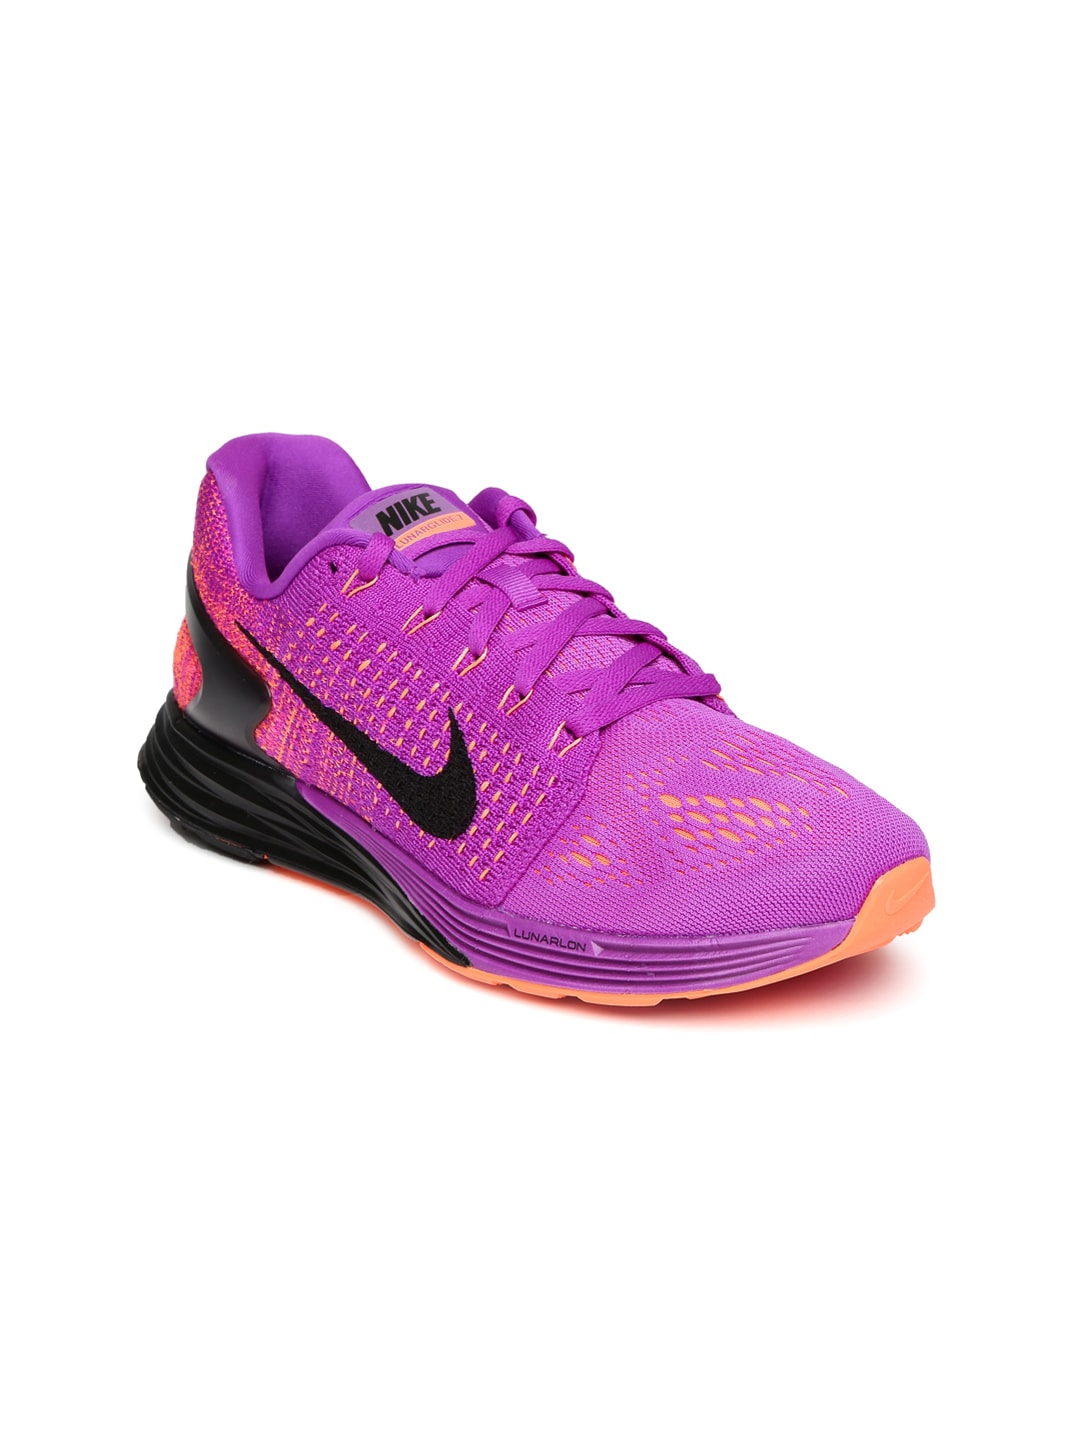 86f937aba952 Nike 747356-501 Women Purple And Orange Lunarglide 7 Running Shoes- Price  in India